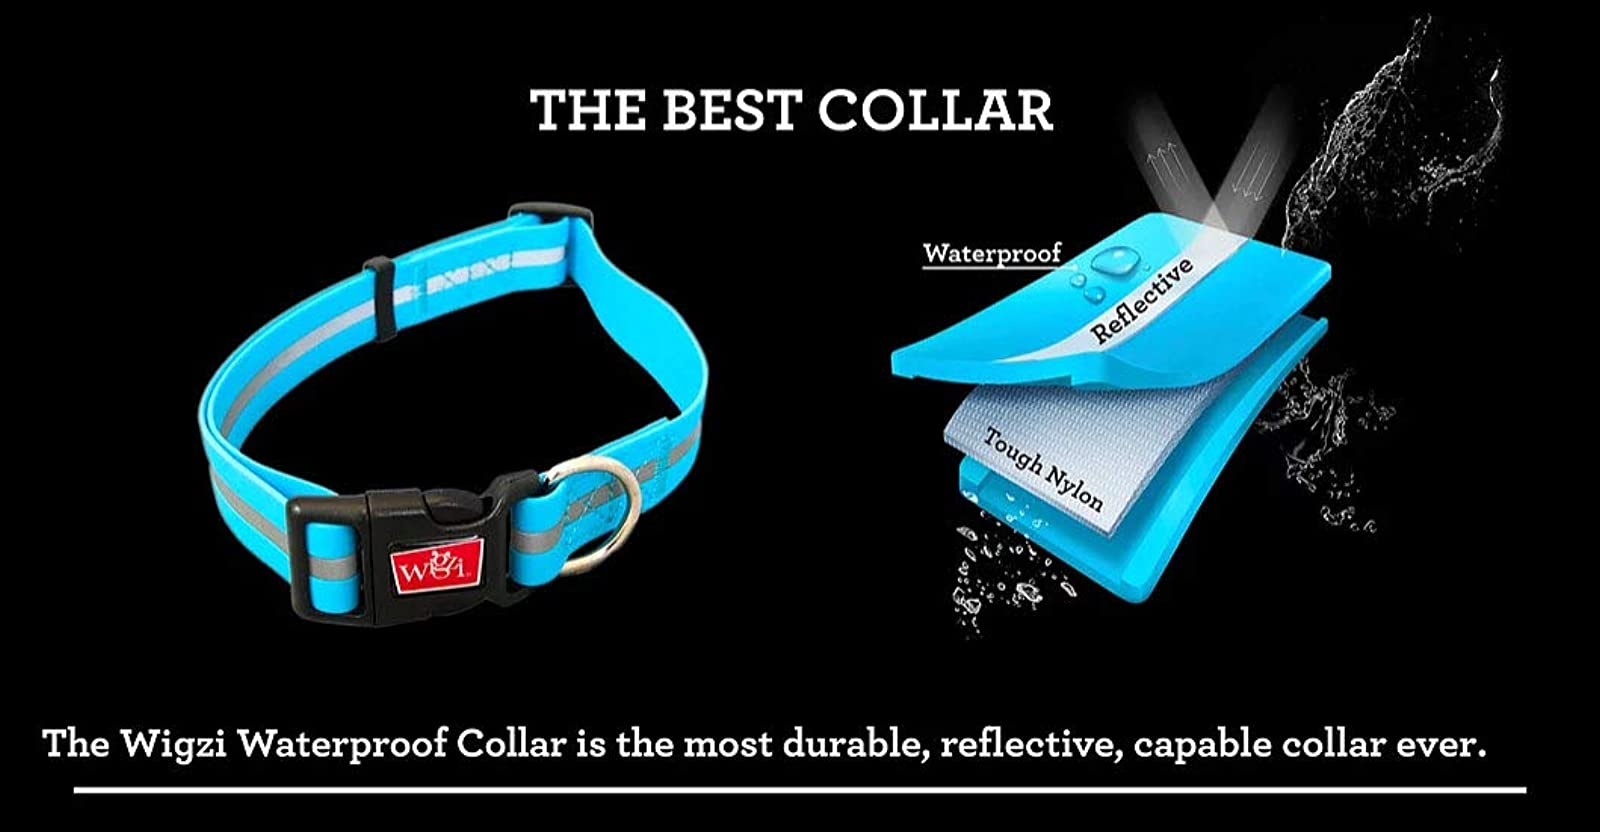 Reflective Waterproof Stink Free Adjustable and Durable - 7